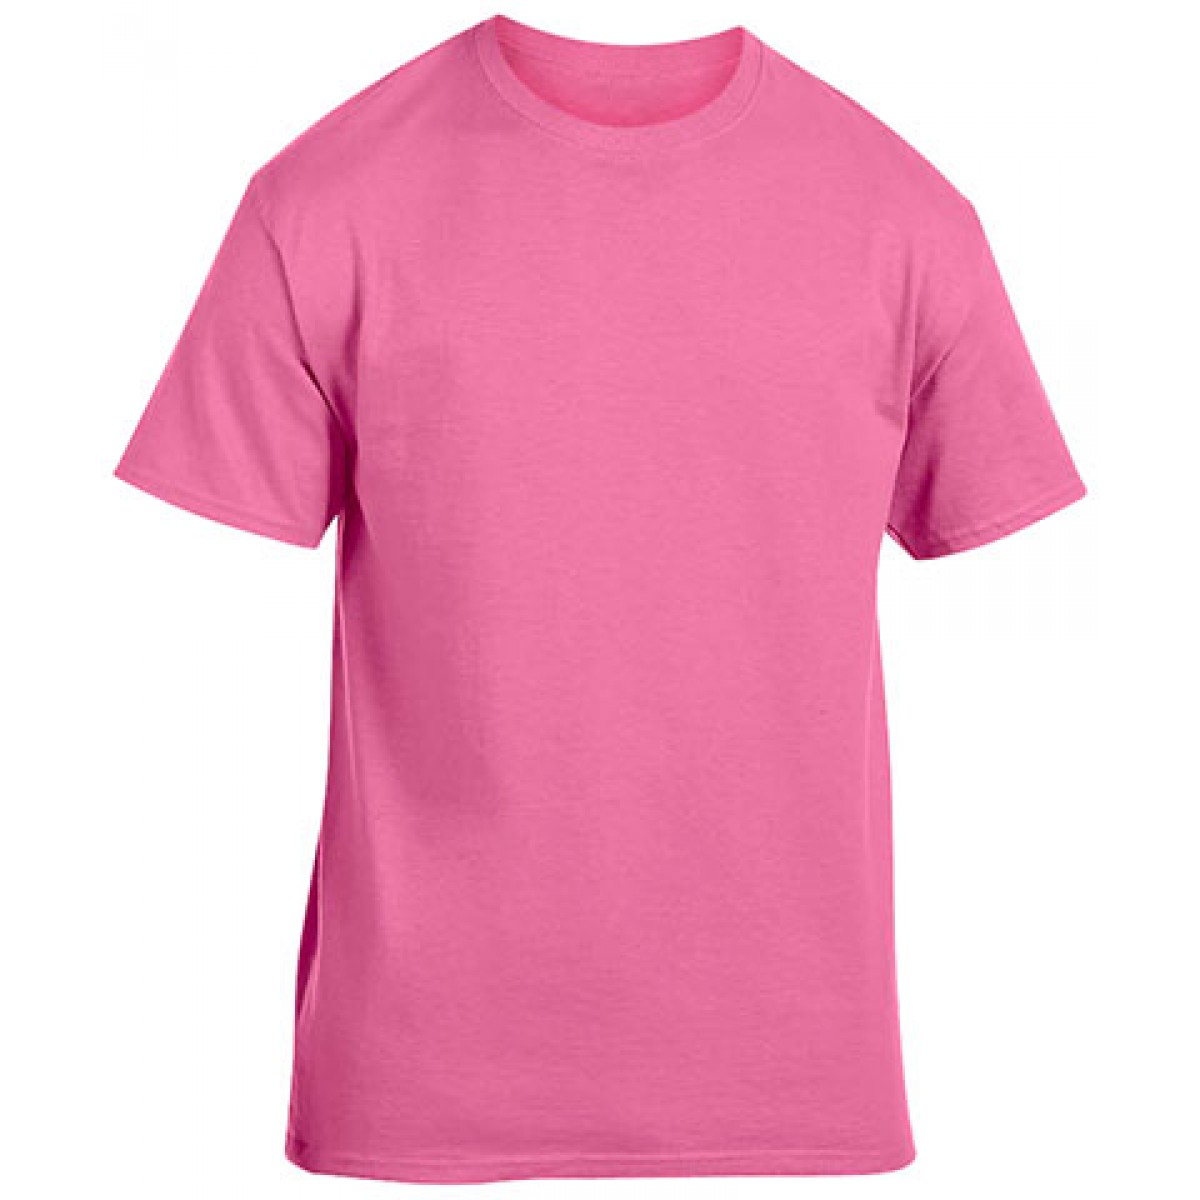 Heavy Cotton Activewear T-Shirt-Safety Pink-2XL